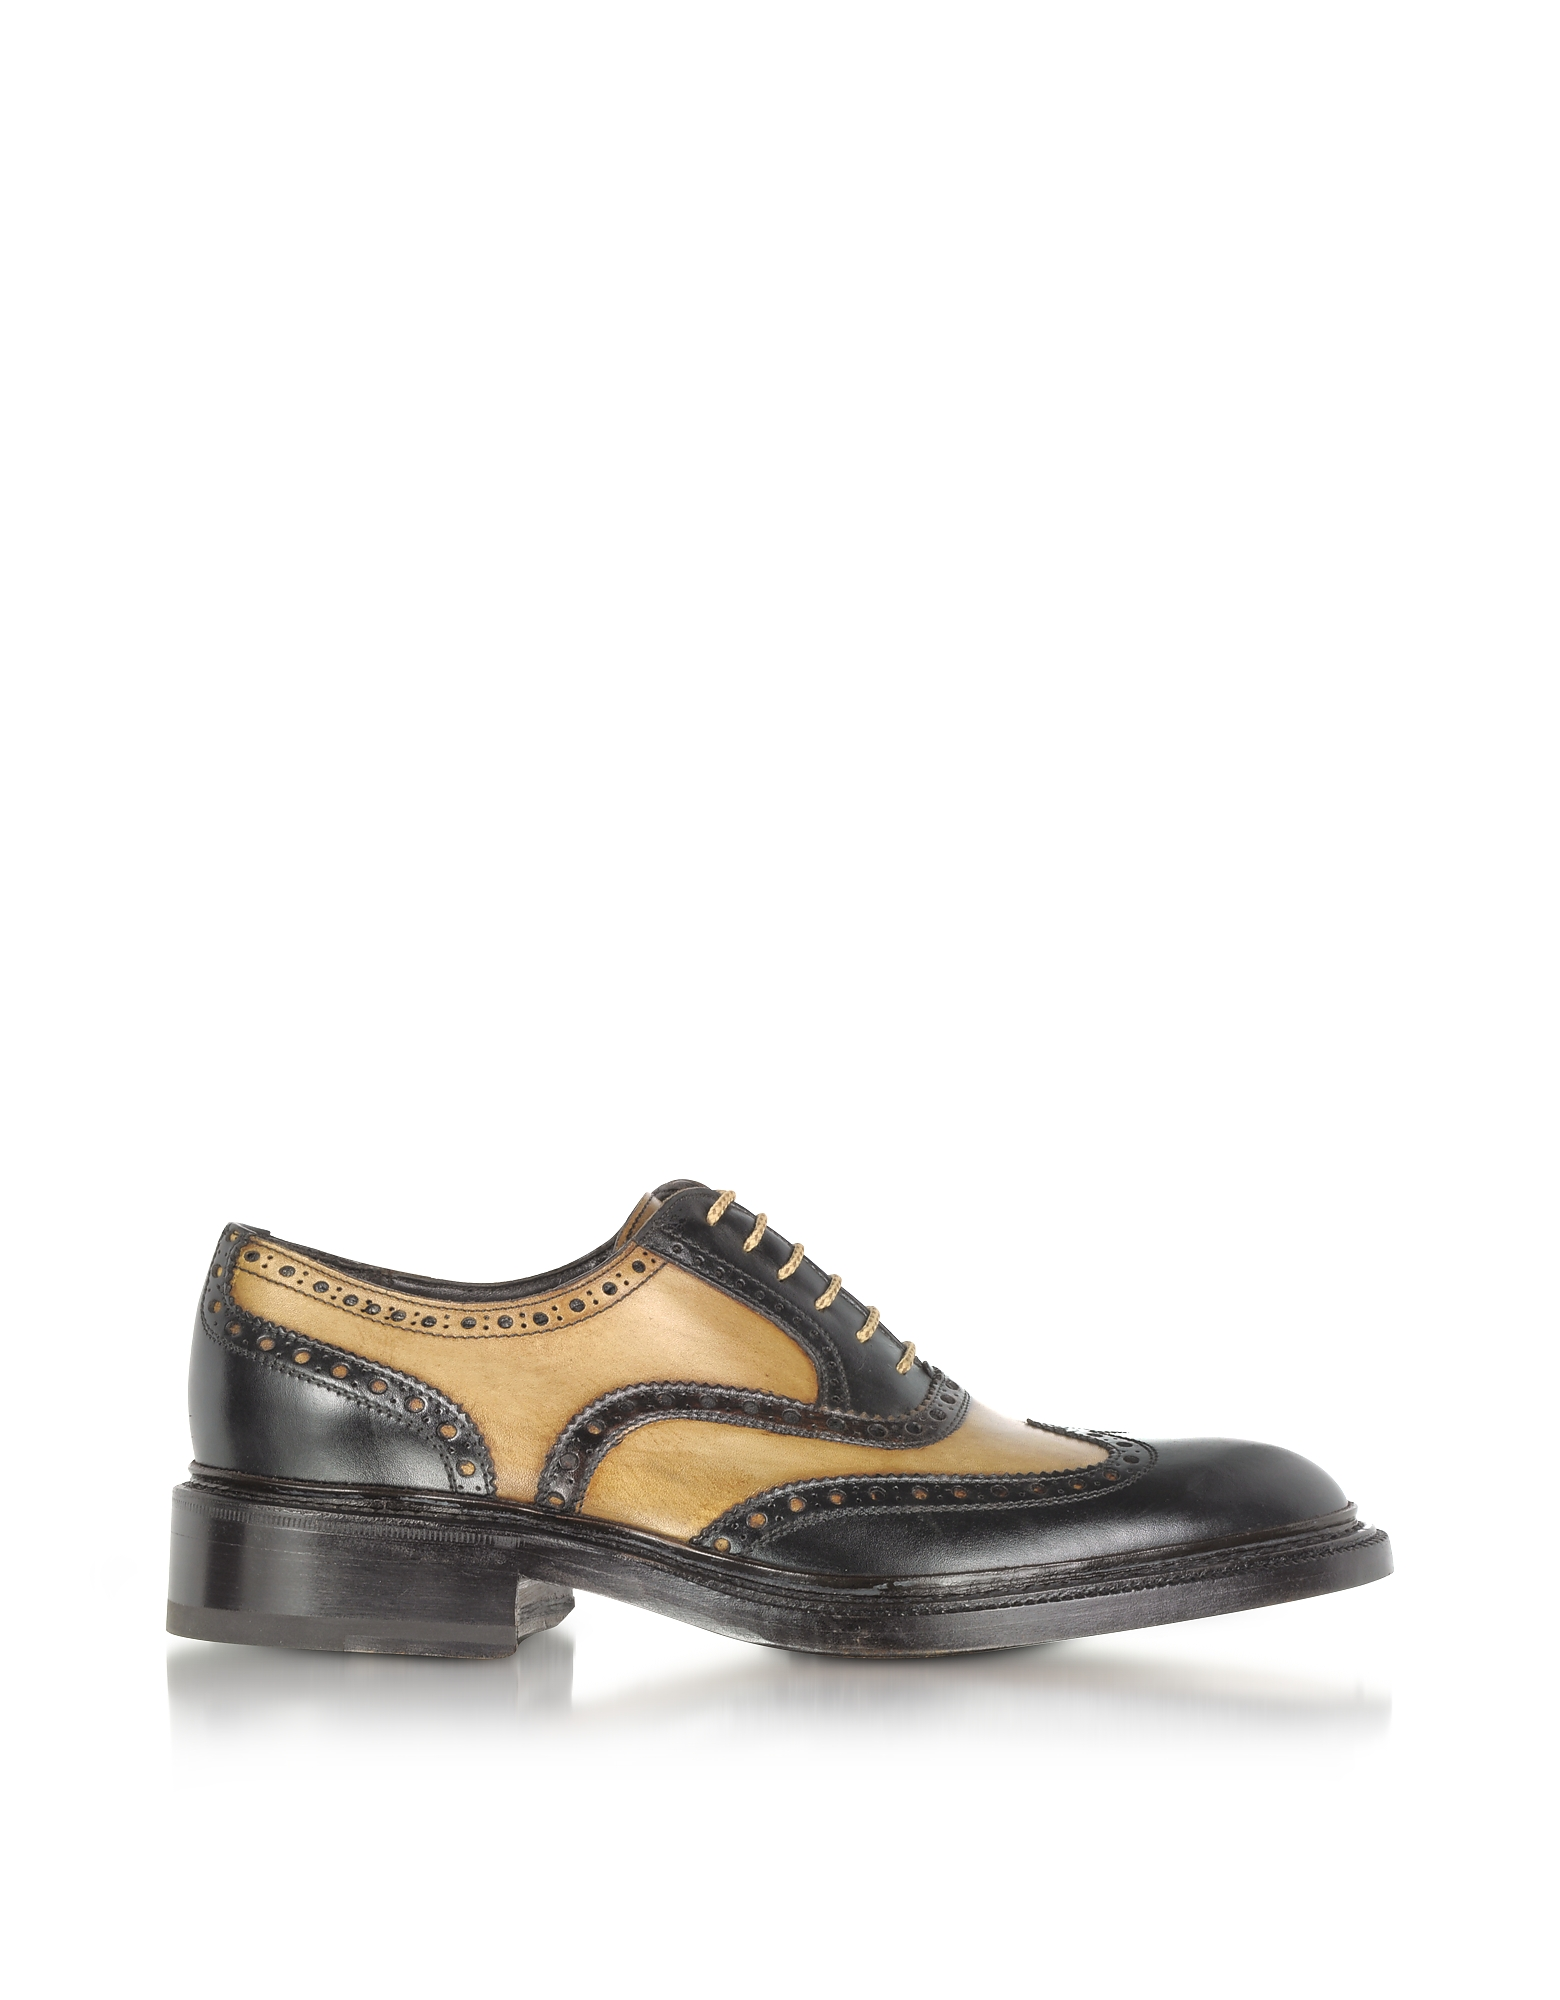 Mens 1920s Shoes History and Buying Guide Boardwalk Empire- Forzieri Designer Shoes Italian Handcrafted Two-tone Wingtip Oxford Shoes $891.00 AT vintagedancer.com